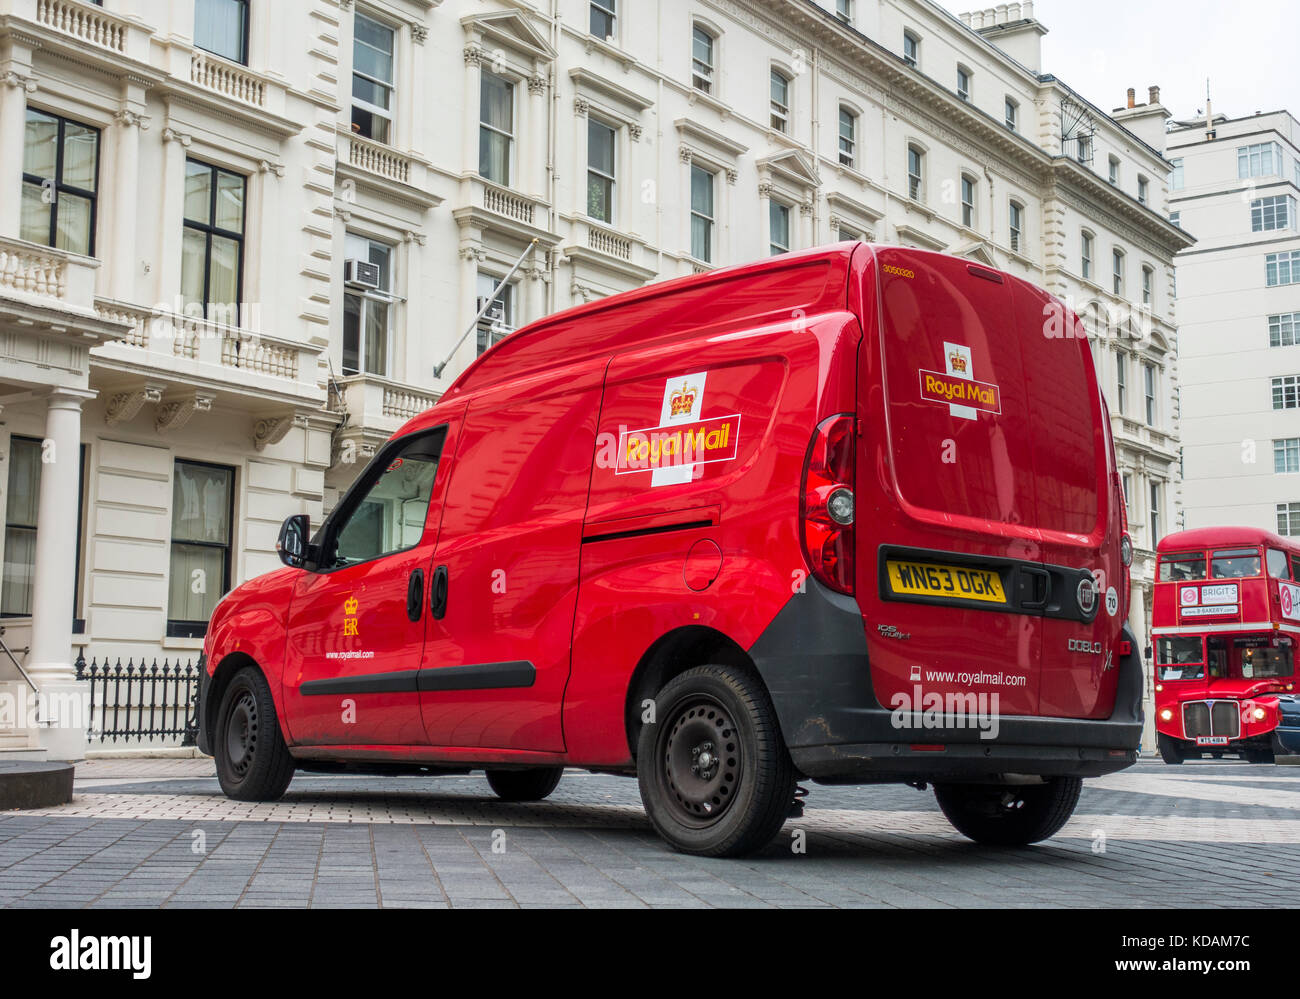 Royal Mail van parked in a street, outside period buildings, in South Kensington, with a traditional red bus approaching. - Stock Image